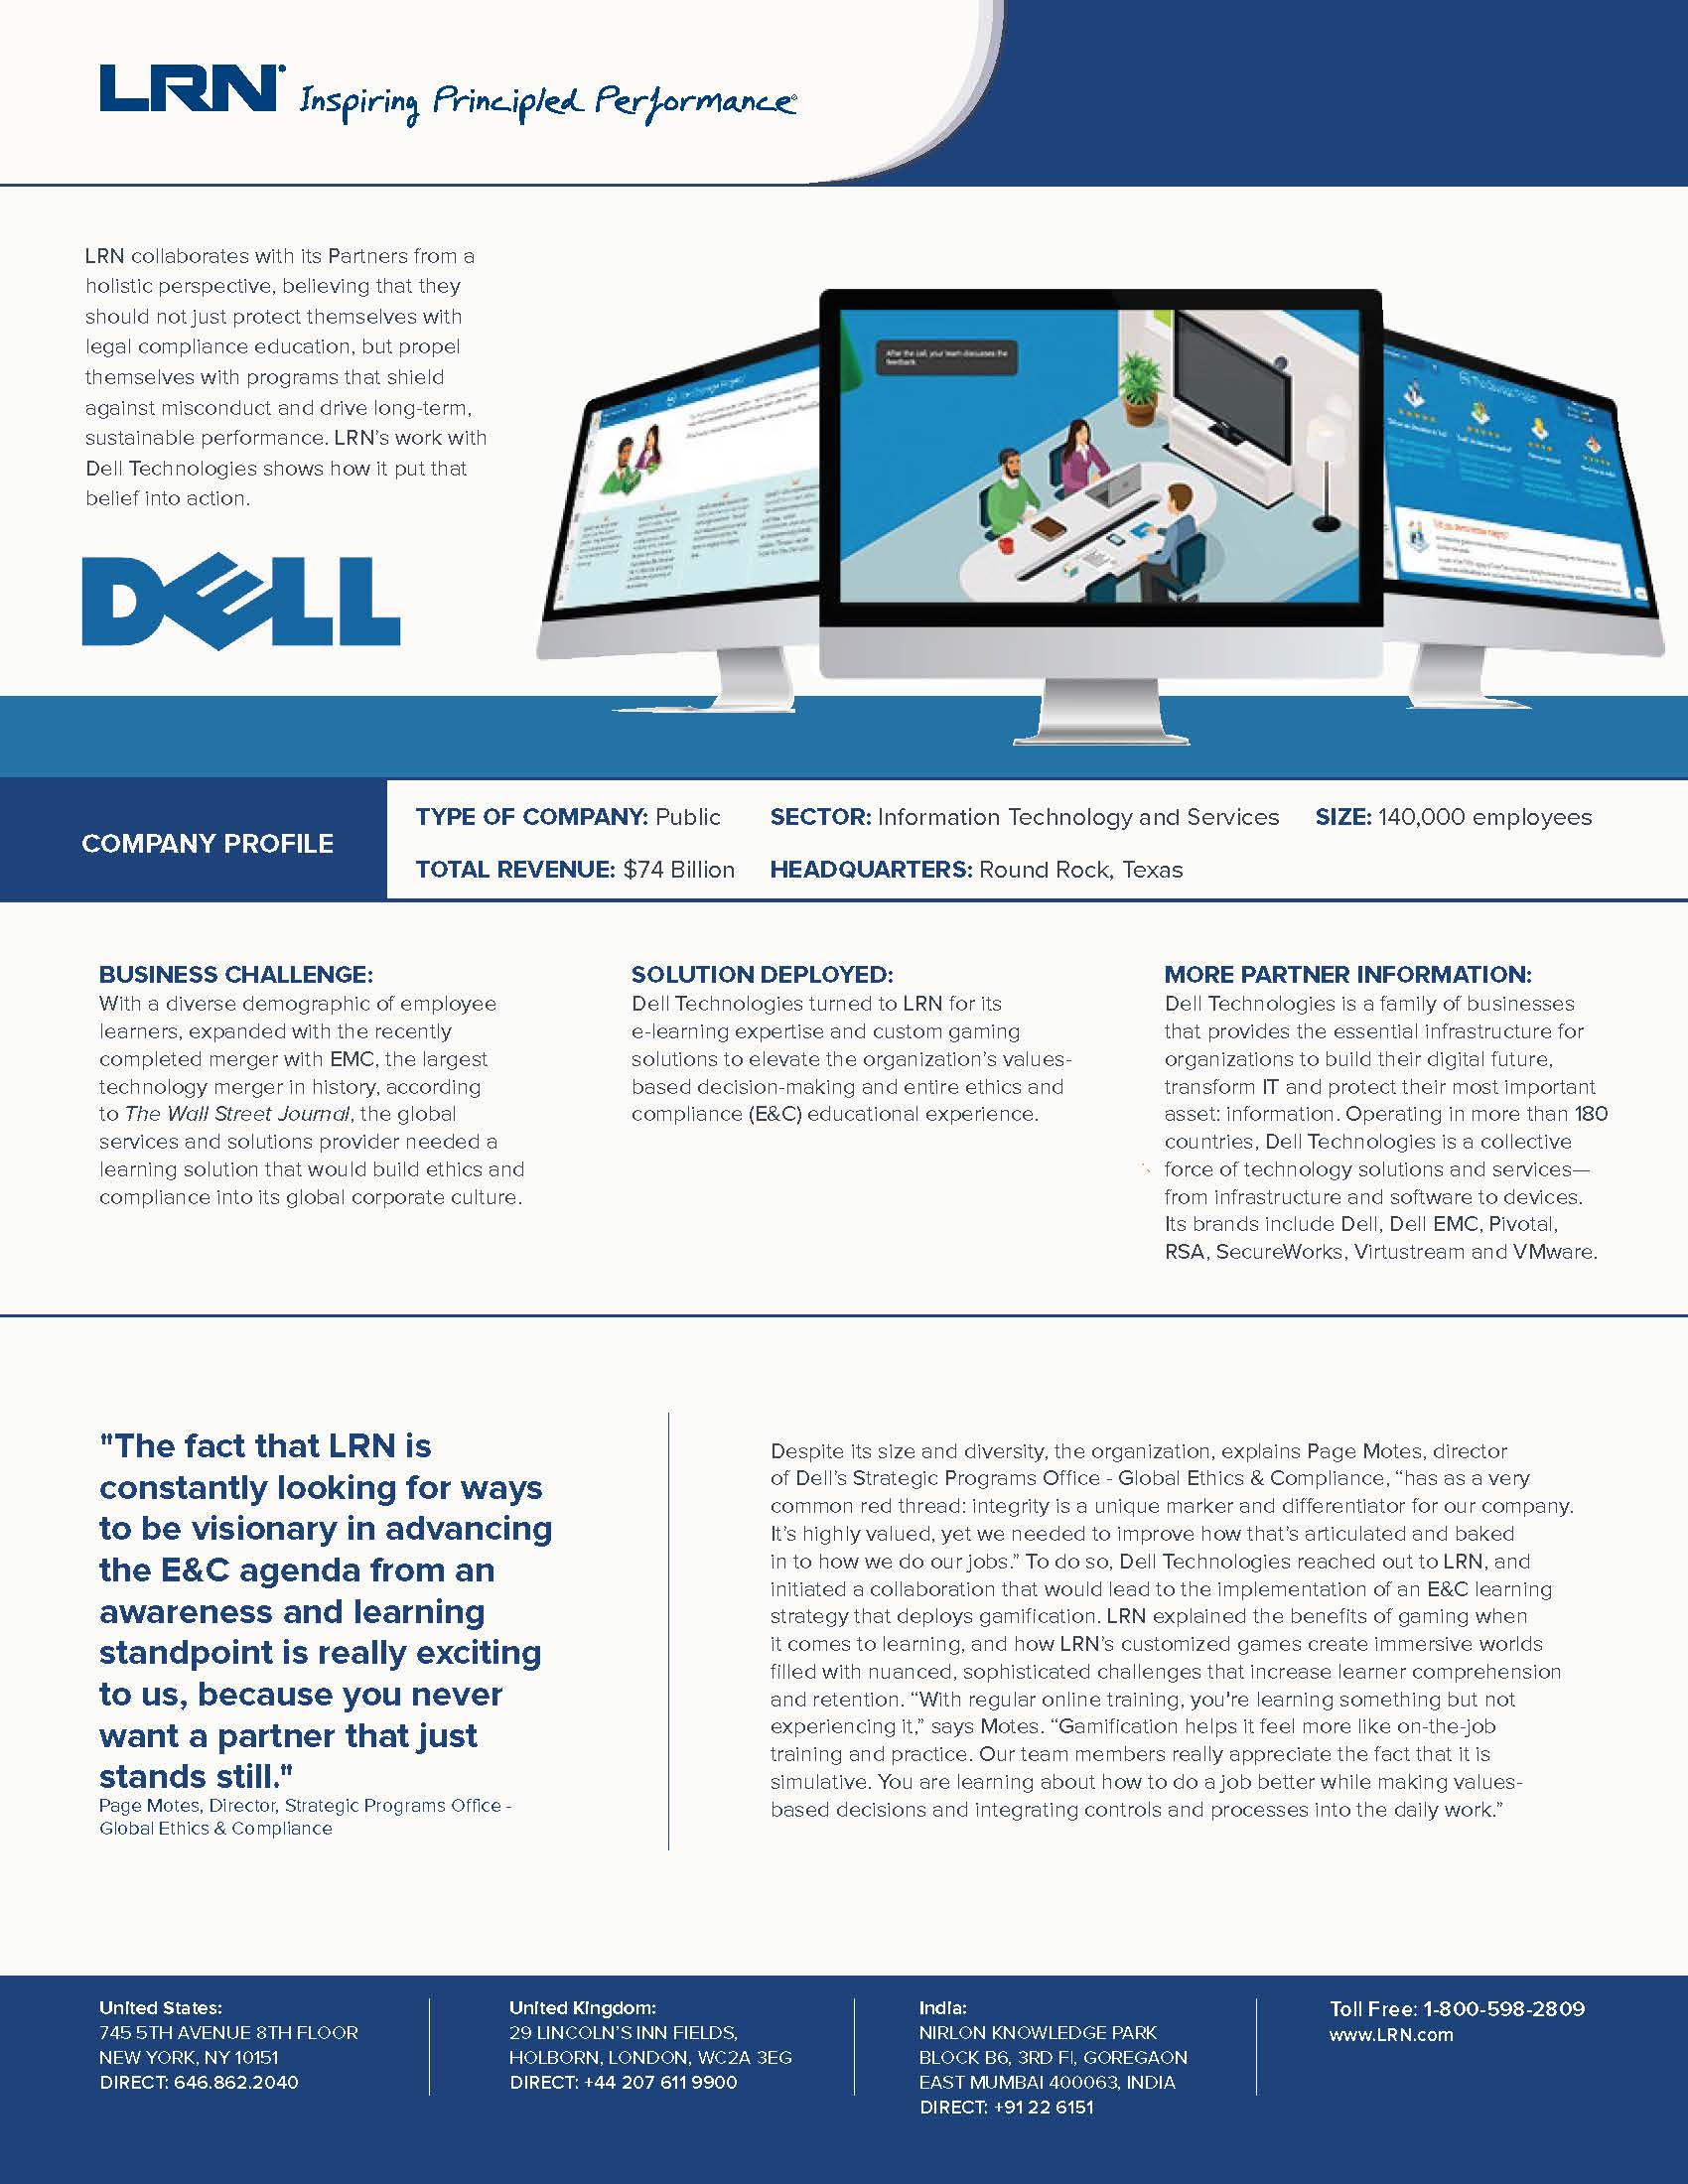 2017_06_12_CaseStudy_Dell_Page_1.jpg